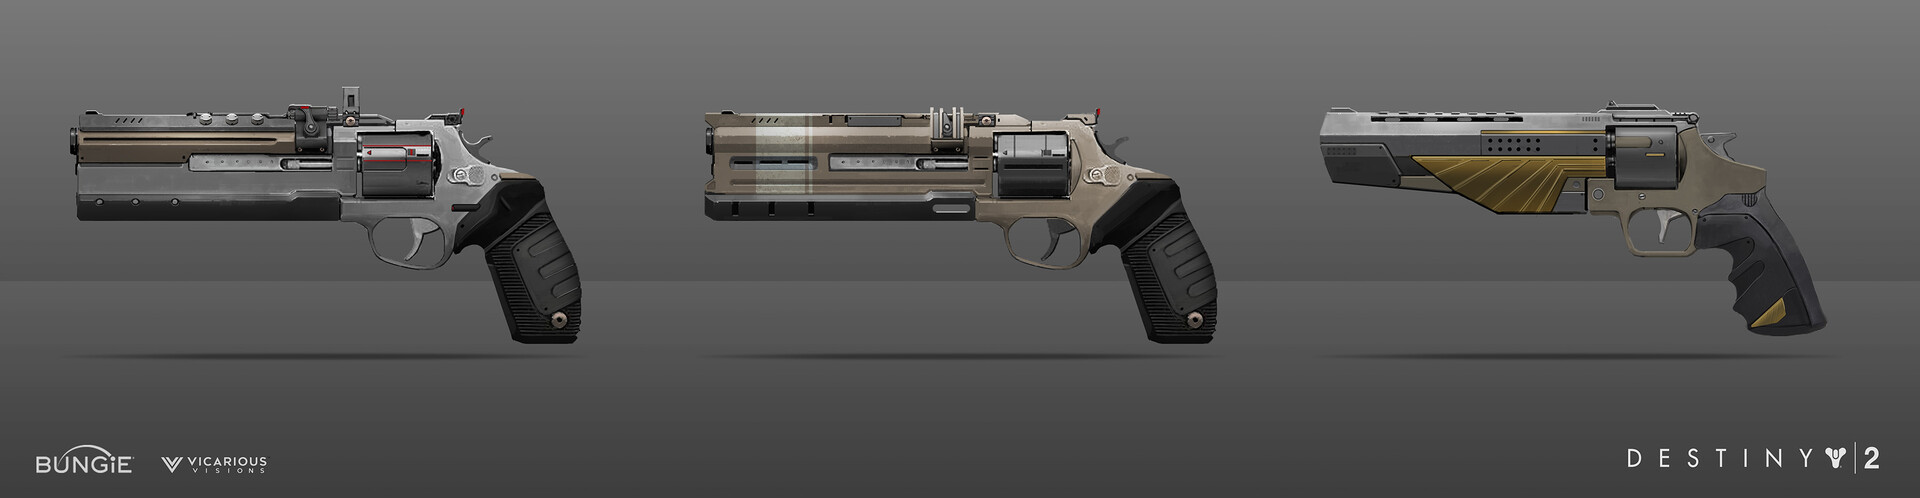 Dave keenan tactical hand cannon concept